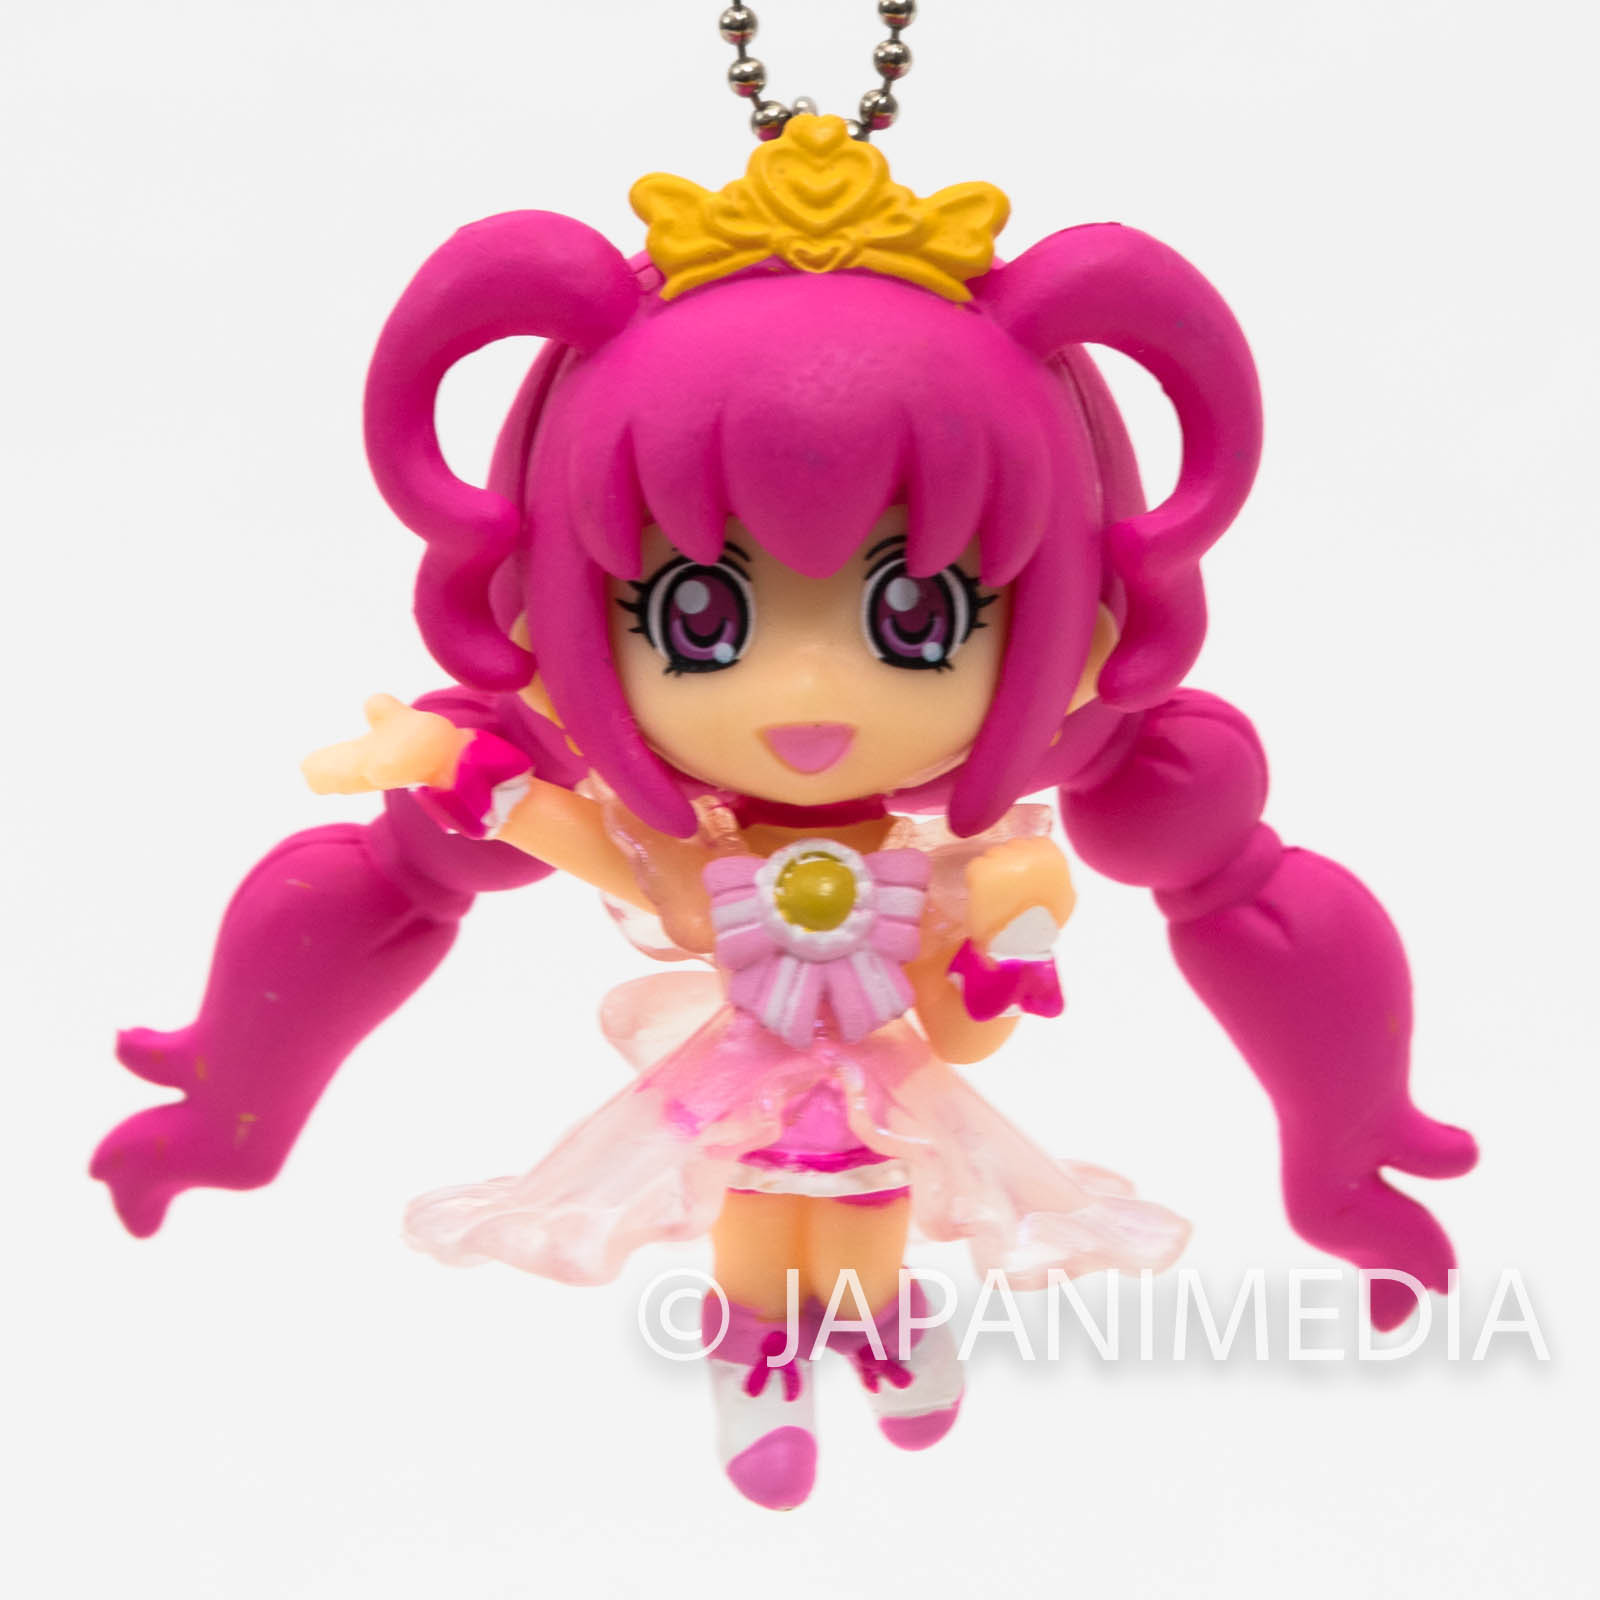 Smile PreCure! Princess Happy PreCure Mascot Figure Ball Keychain JAPAN ANIME